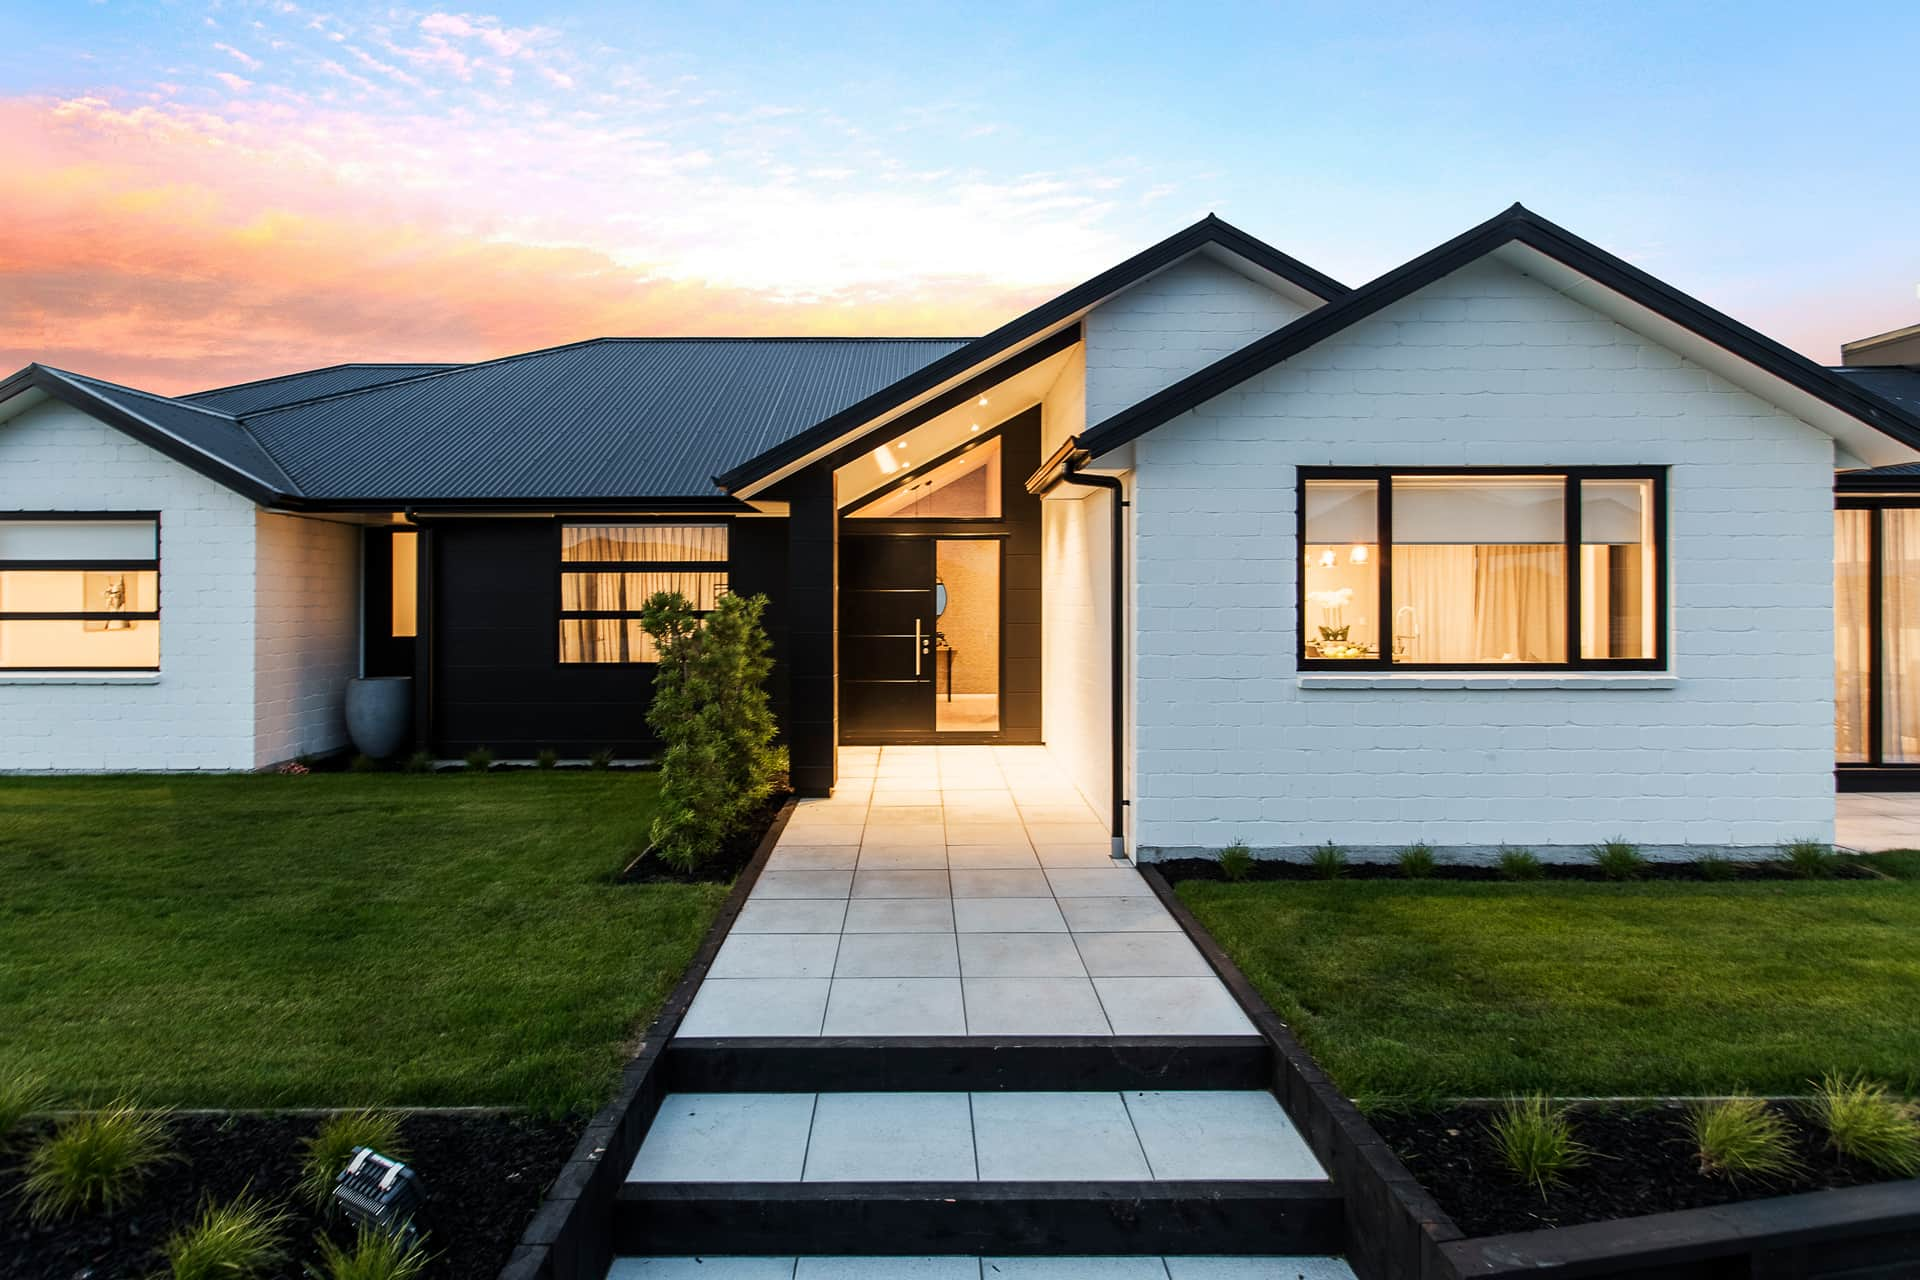 Sentinel homes ltd building guide house design and for Home builders guide